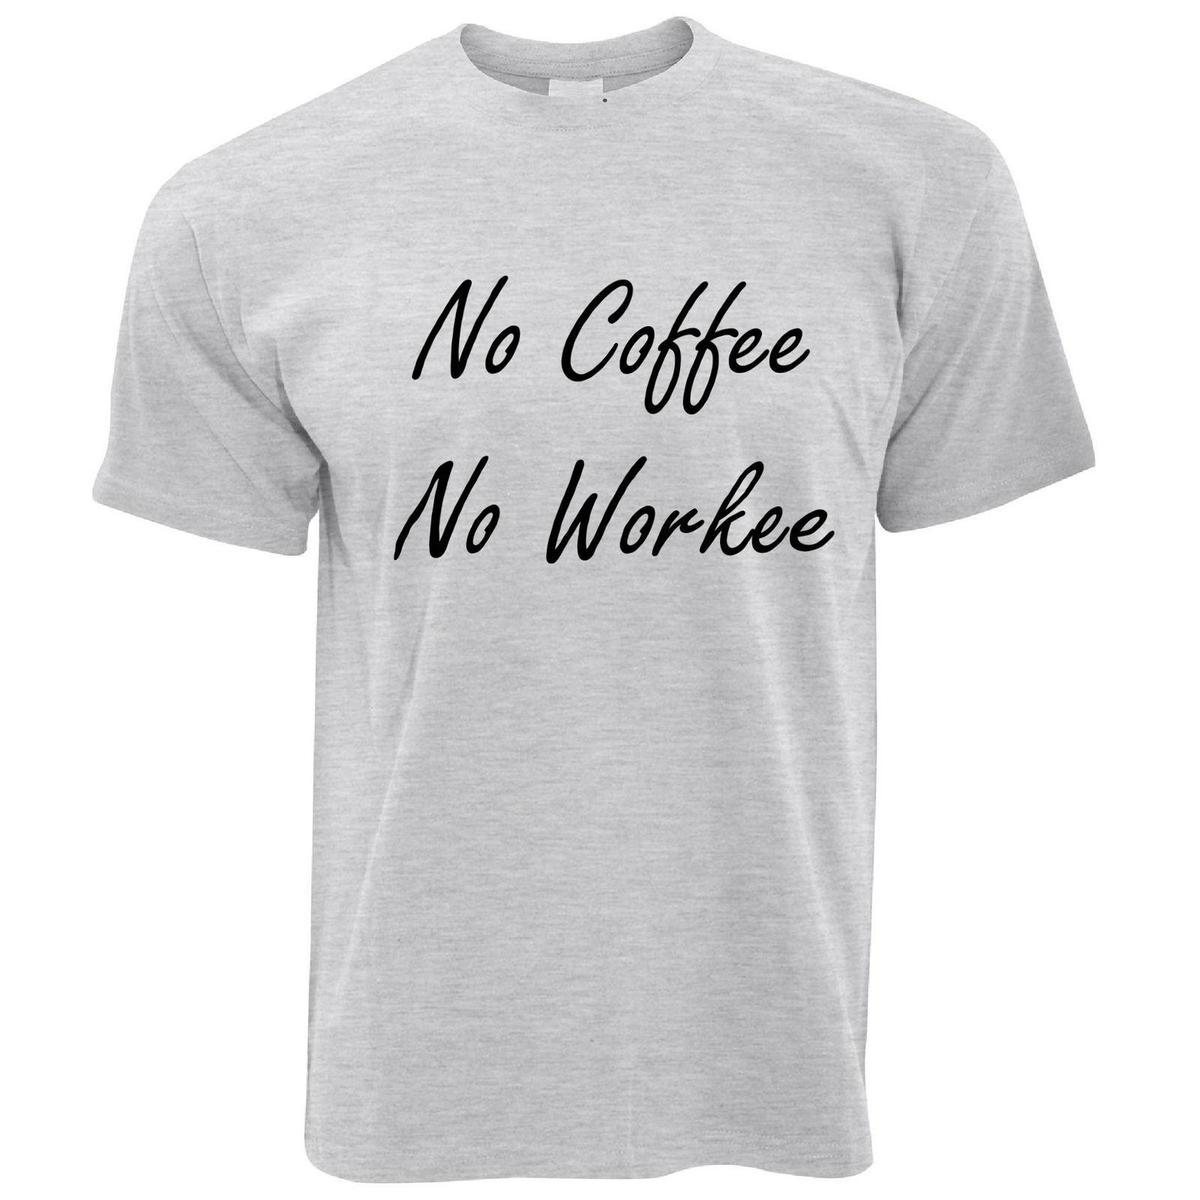 760b75f79 Coffee Mens T Shirt No Coffee No Workee Funny Mornings Lazy Tired Sleep  White Shirts Funny T Shirts For Men From Yuxin001, $13.8| DHgate.Com